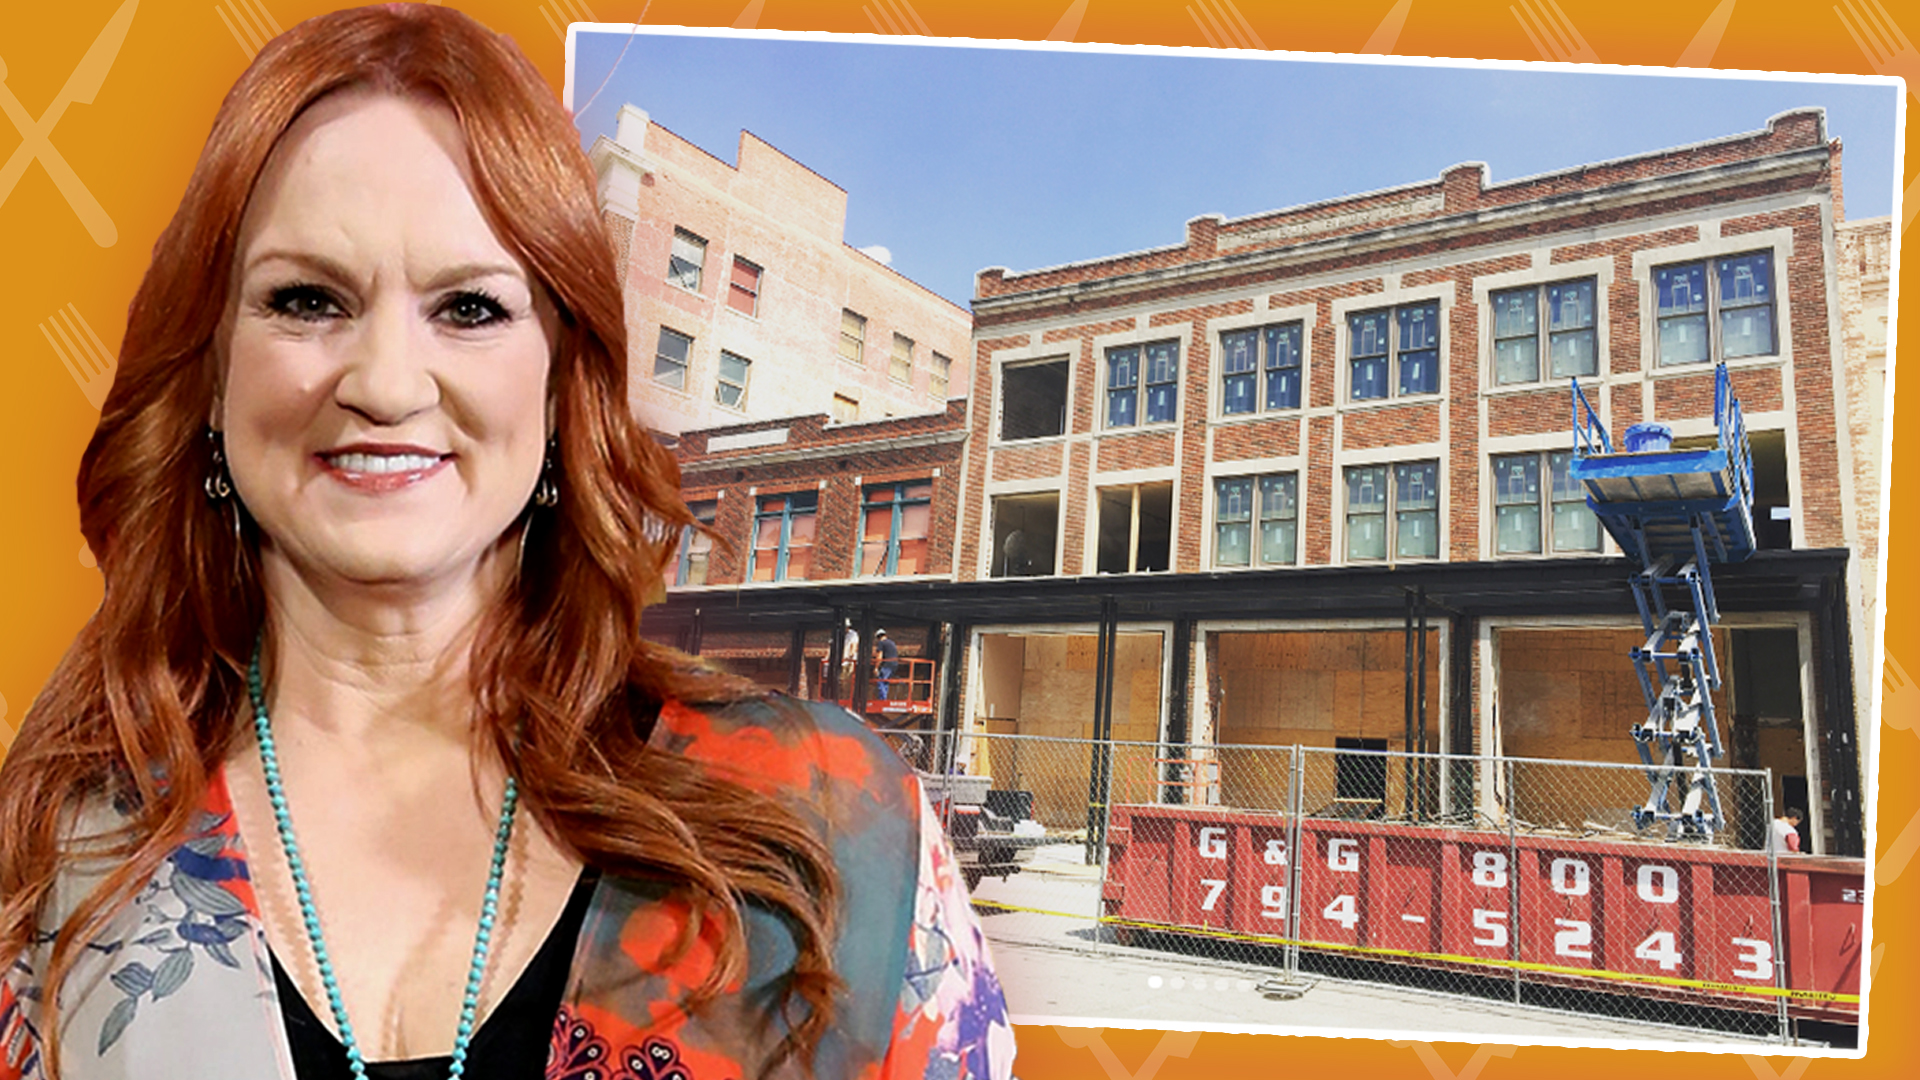 Witching Ree Drummond Opening Hotel Oklahoma Pioneer Ree Drummond Opening Hotel Oklahoma Ree Drummond Ranch Ken Ree Drummond Ranch House nice food Ree Drummond Ranch